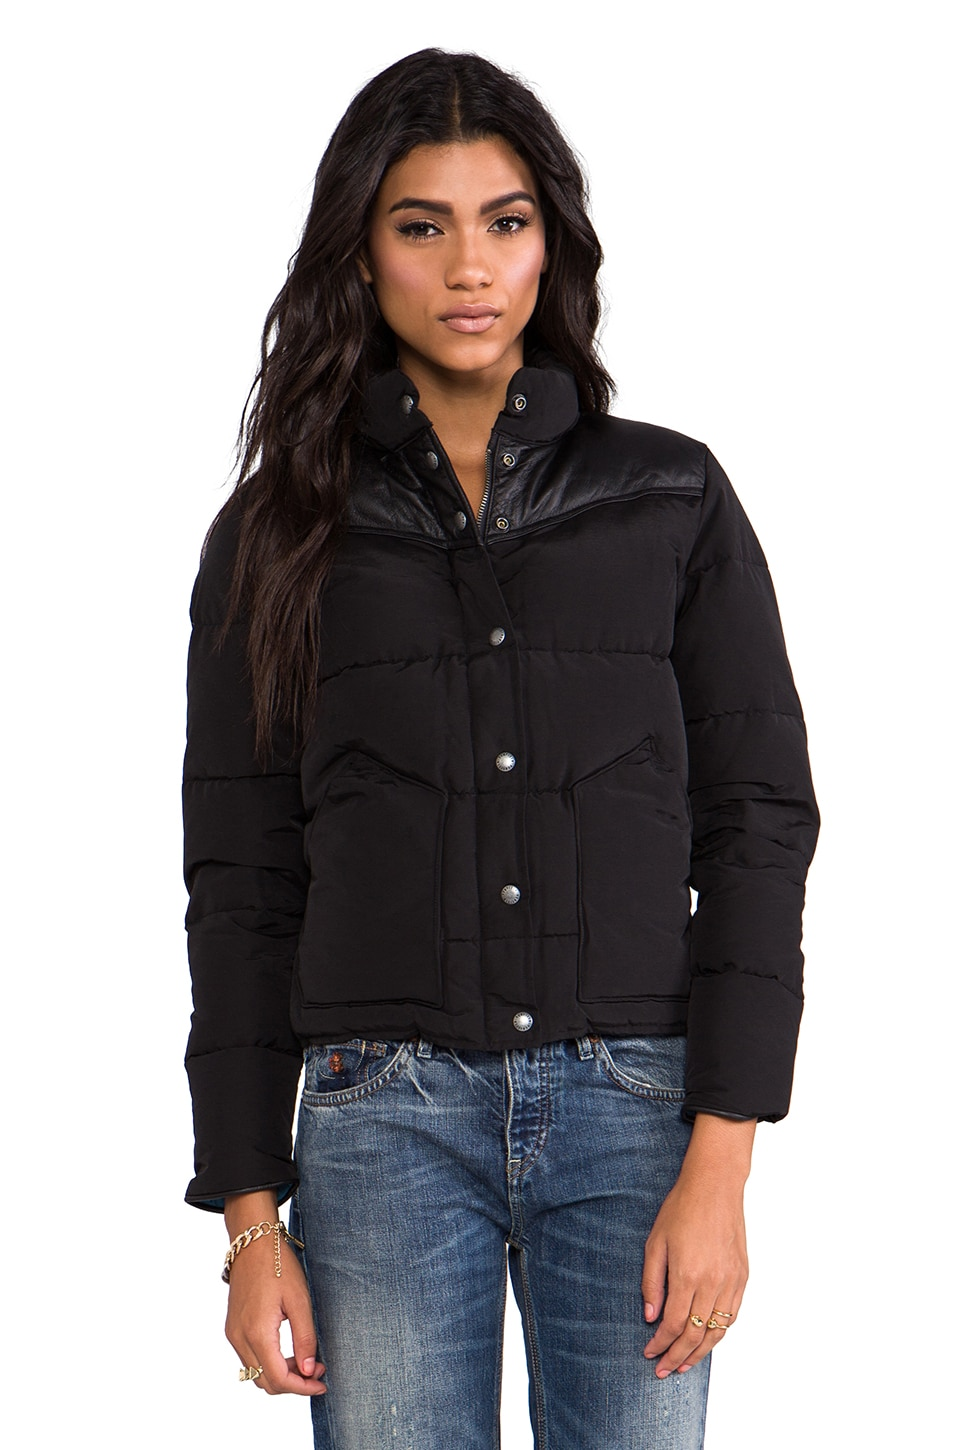 Penfield Blue Label Gillman Down Insulated Jacket in Black